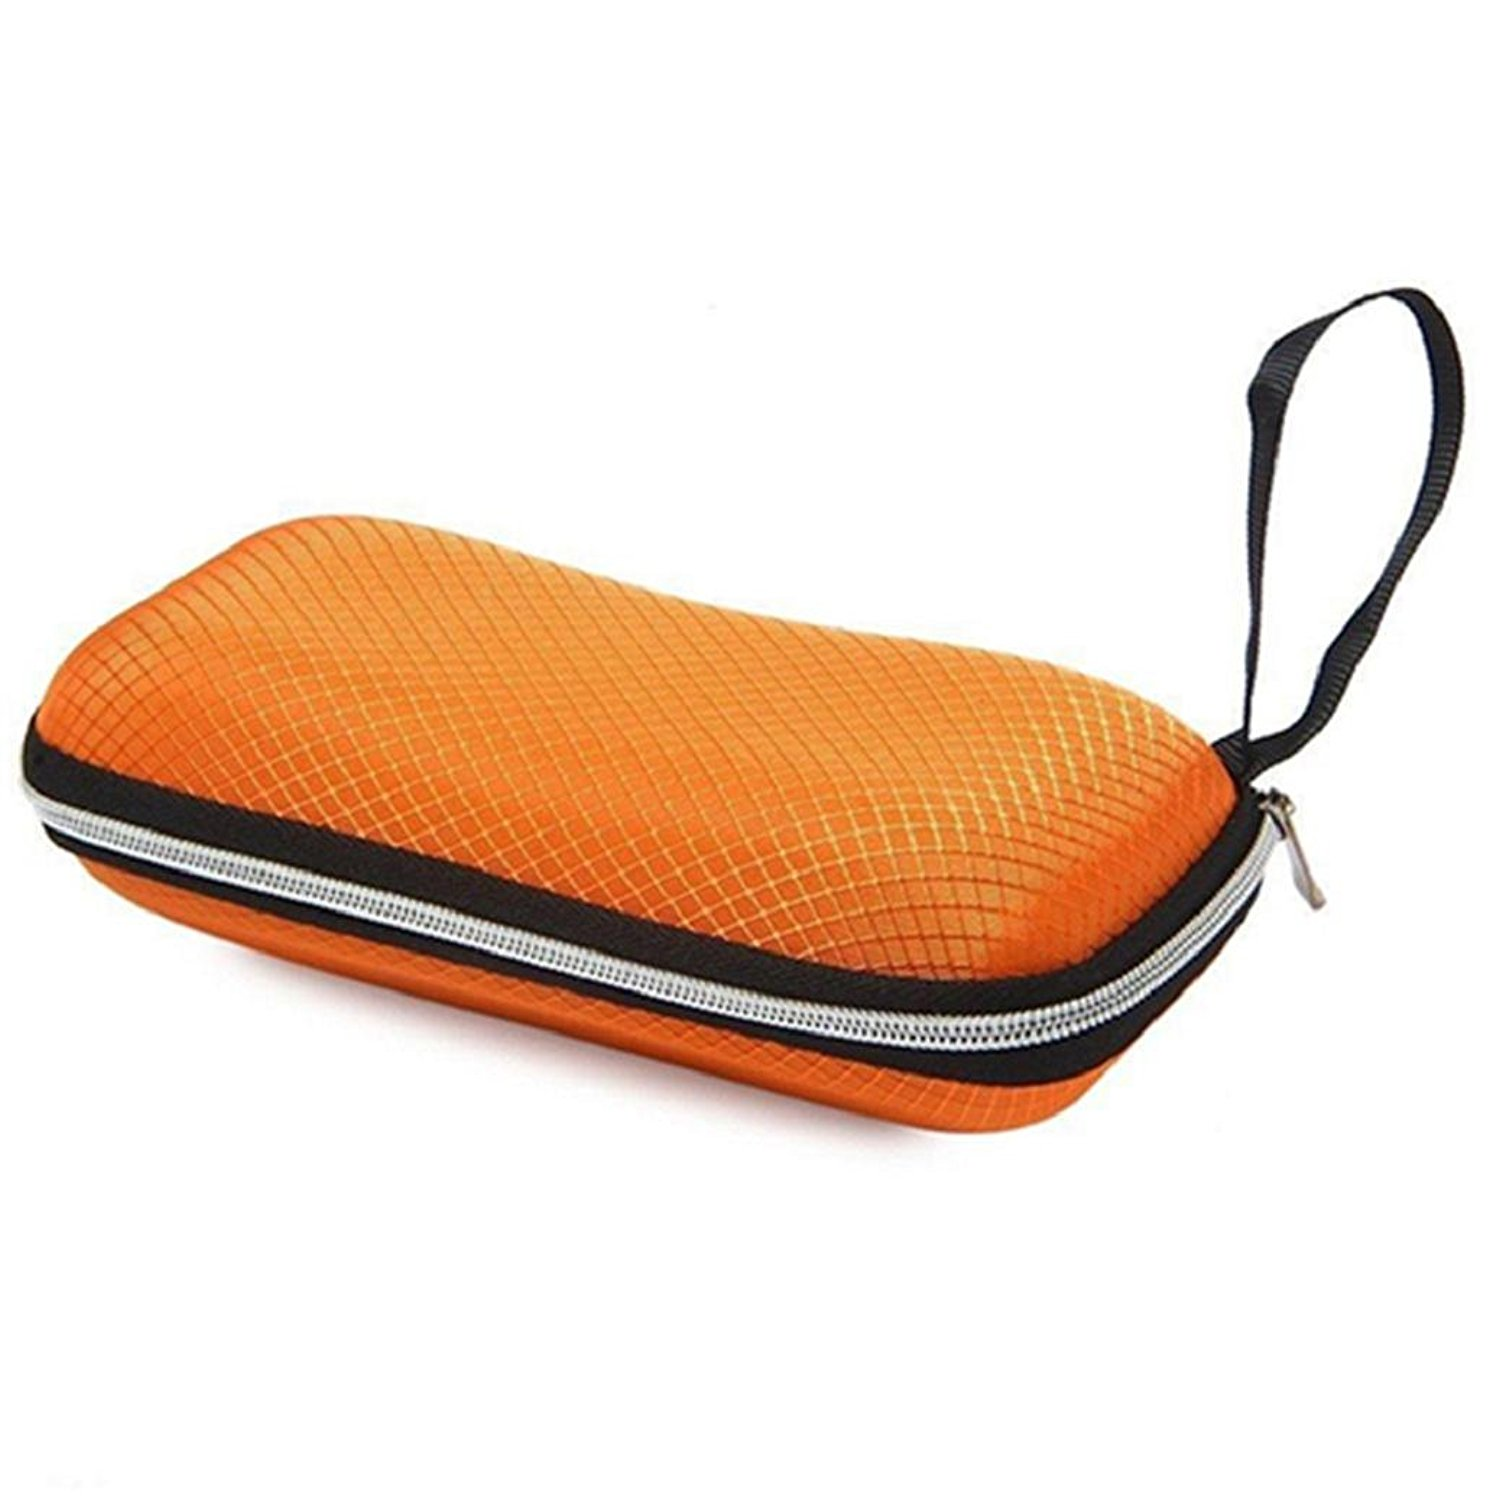 Afco Portable Zipper Glasses Case Hard Shell Protects Eyewear Box for Sunglasses